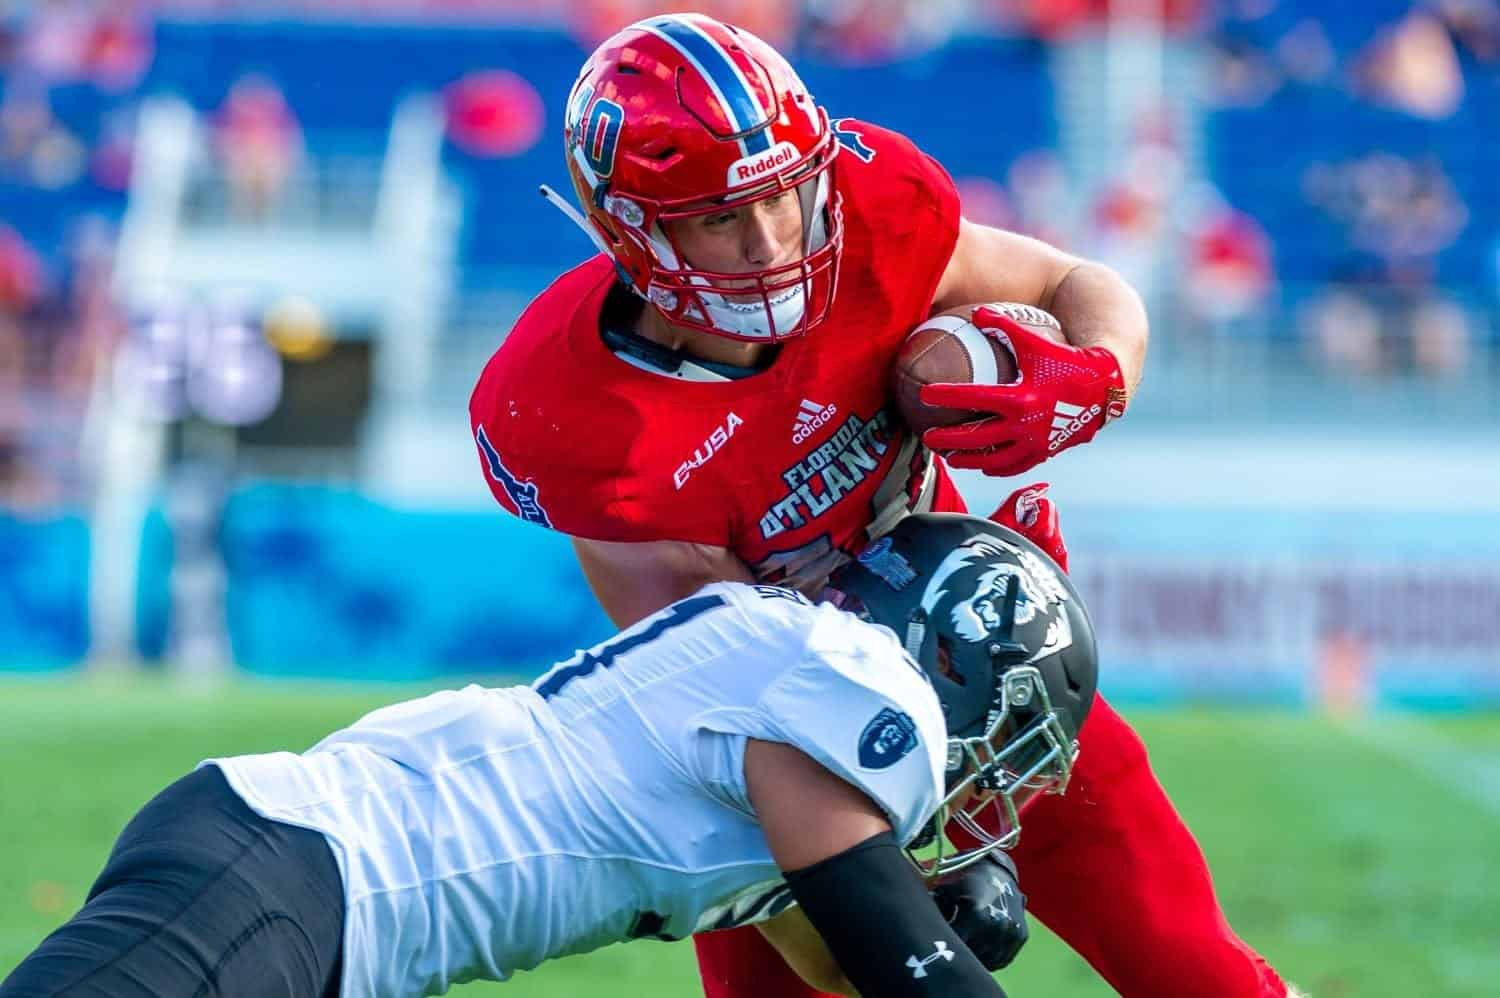 At the 2020 Reese's Senior Bowl, FAU tight end Harrison Bryant is one of three under-the-radar sleepers to watch